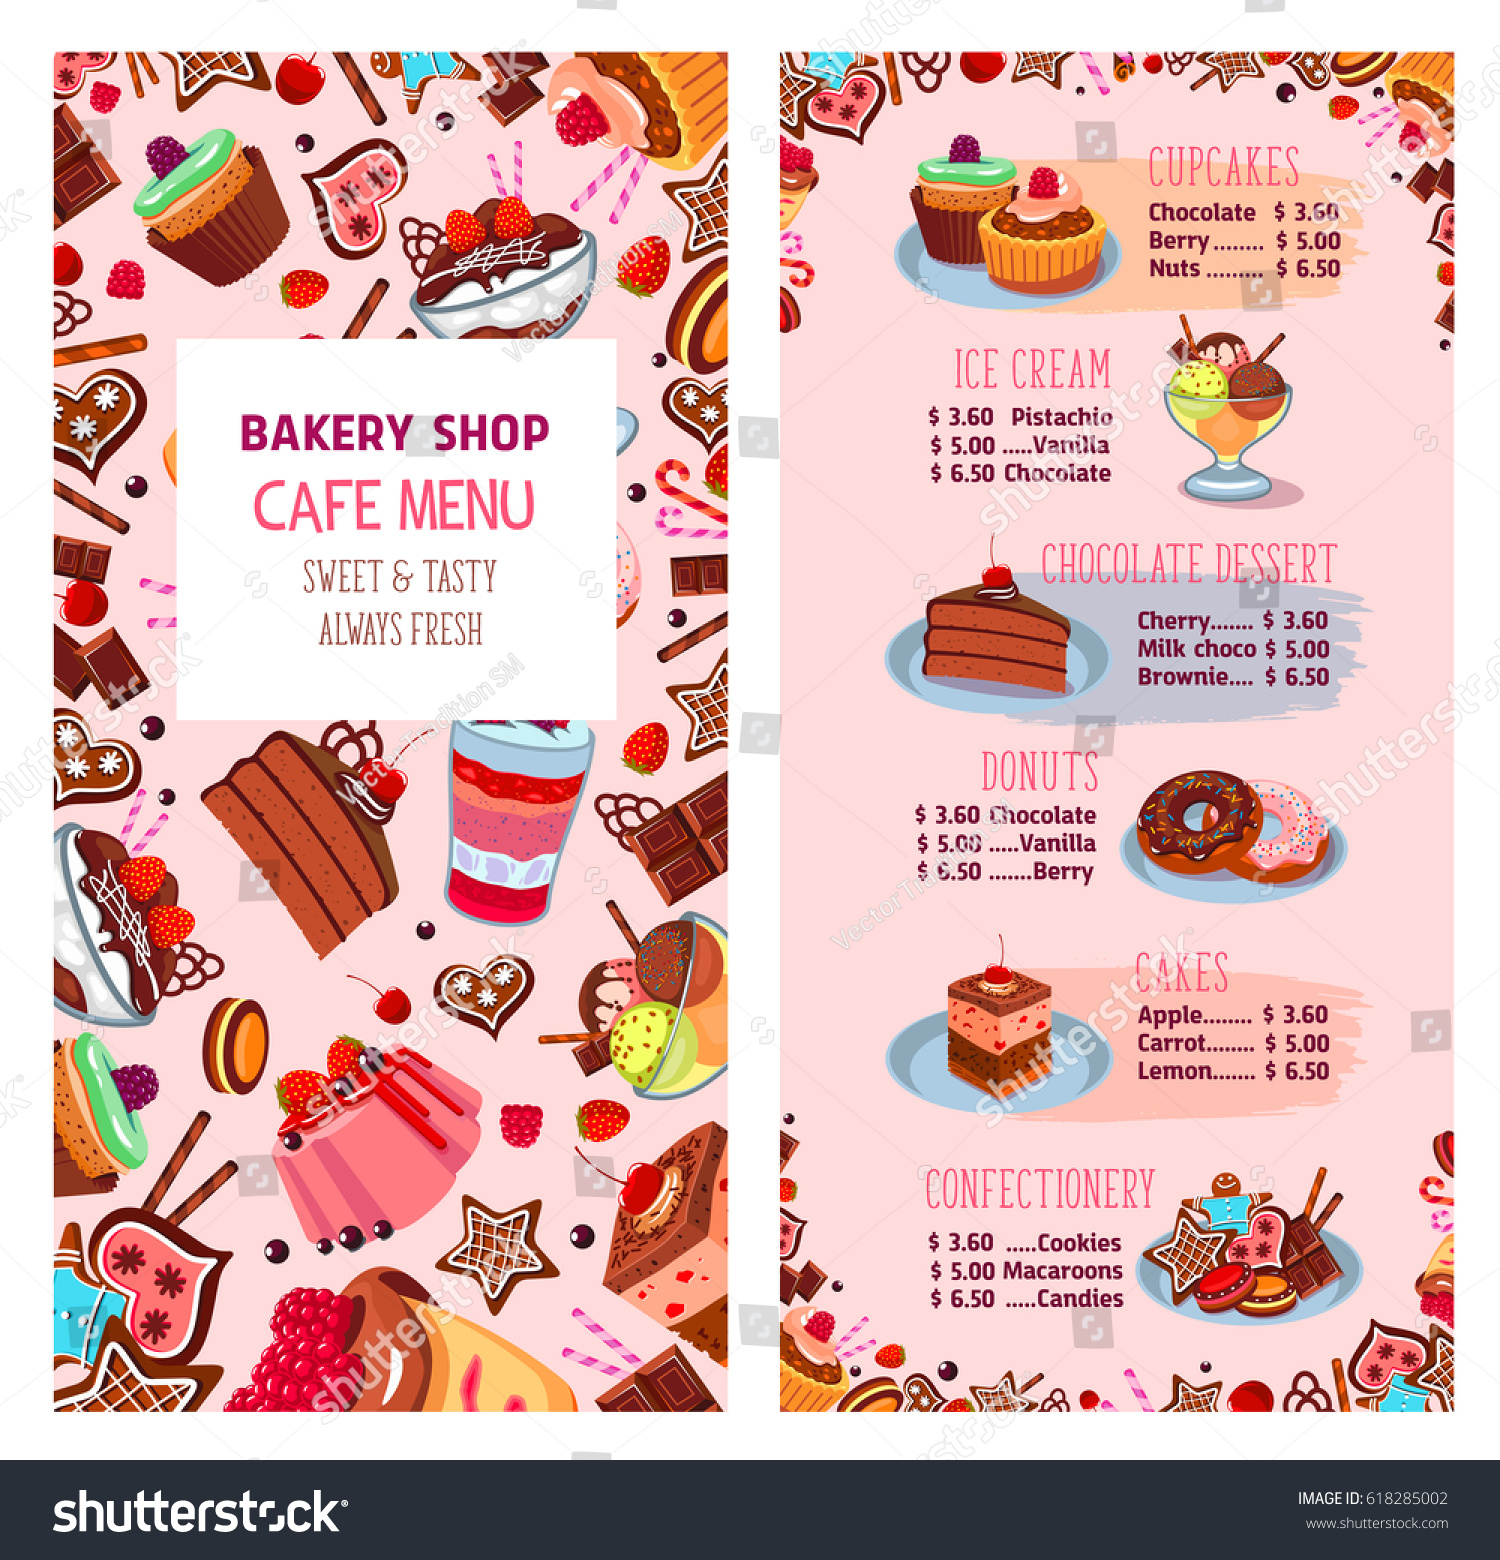 Cheese Cake Shop Menu Brithday Cake